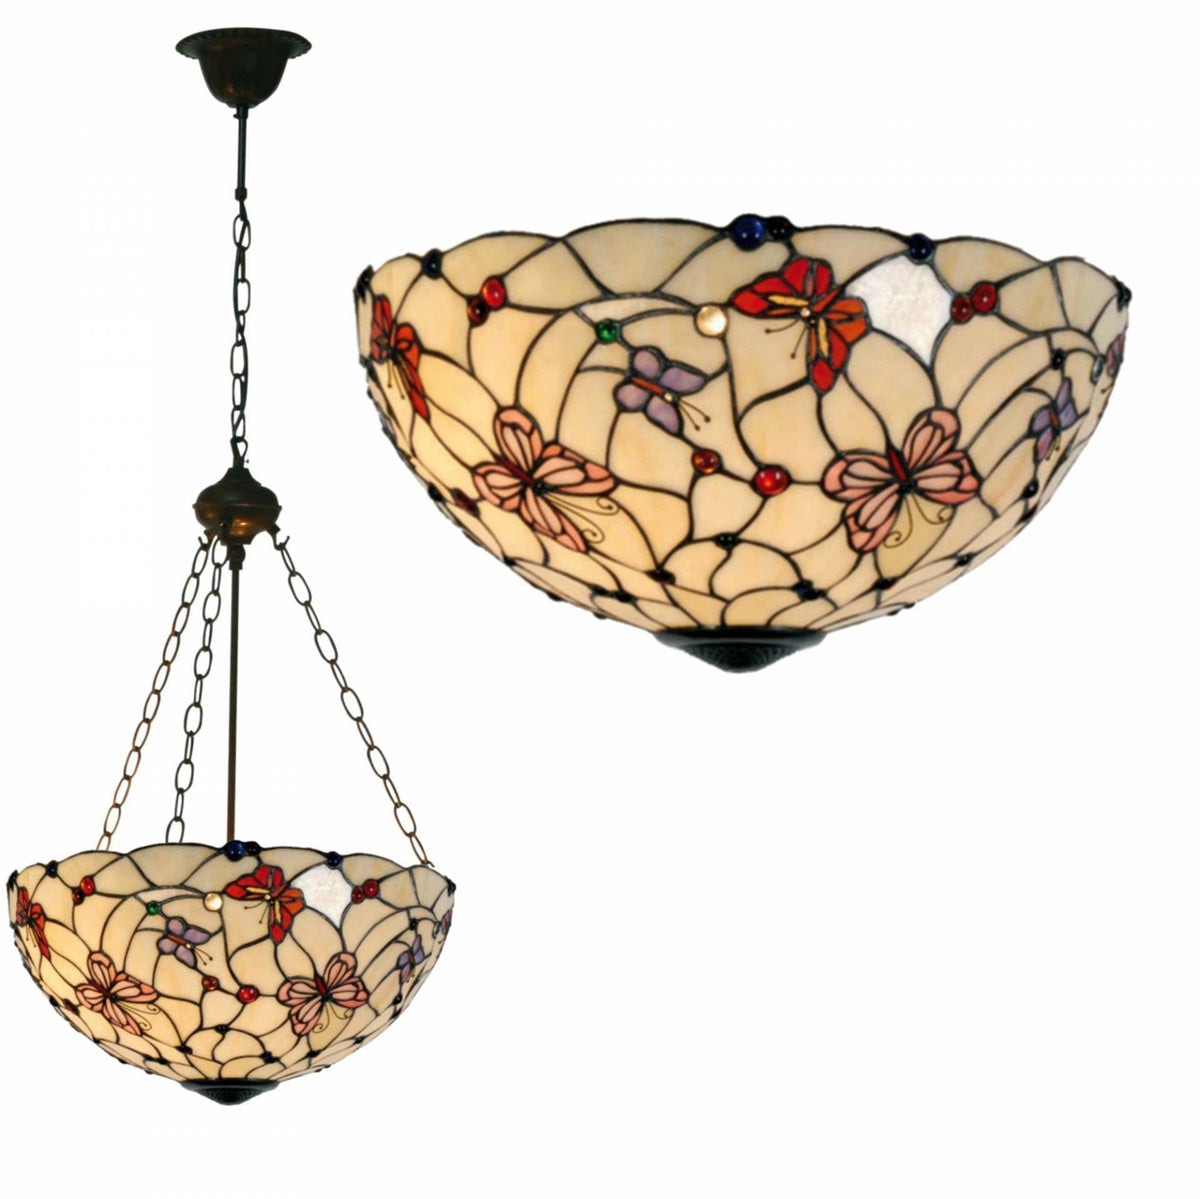 Inverted Ceiling Pendant Lights - London Inverted Ceiling Pendant Light (fancy Chain)